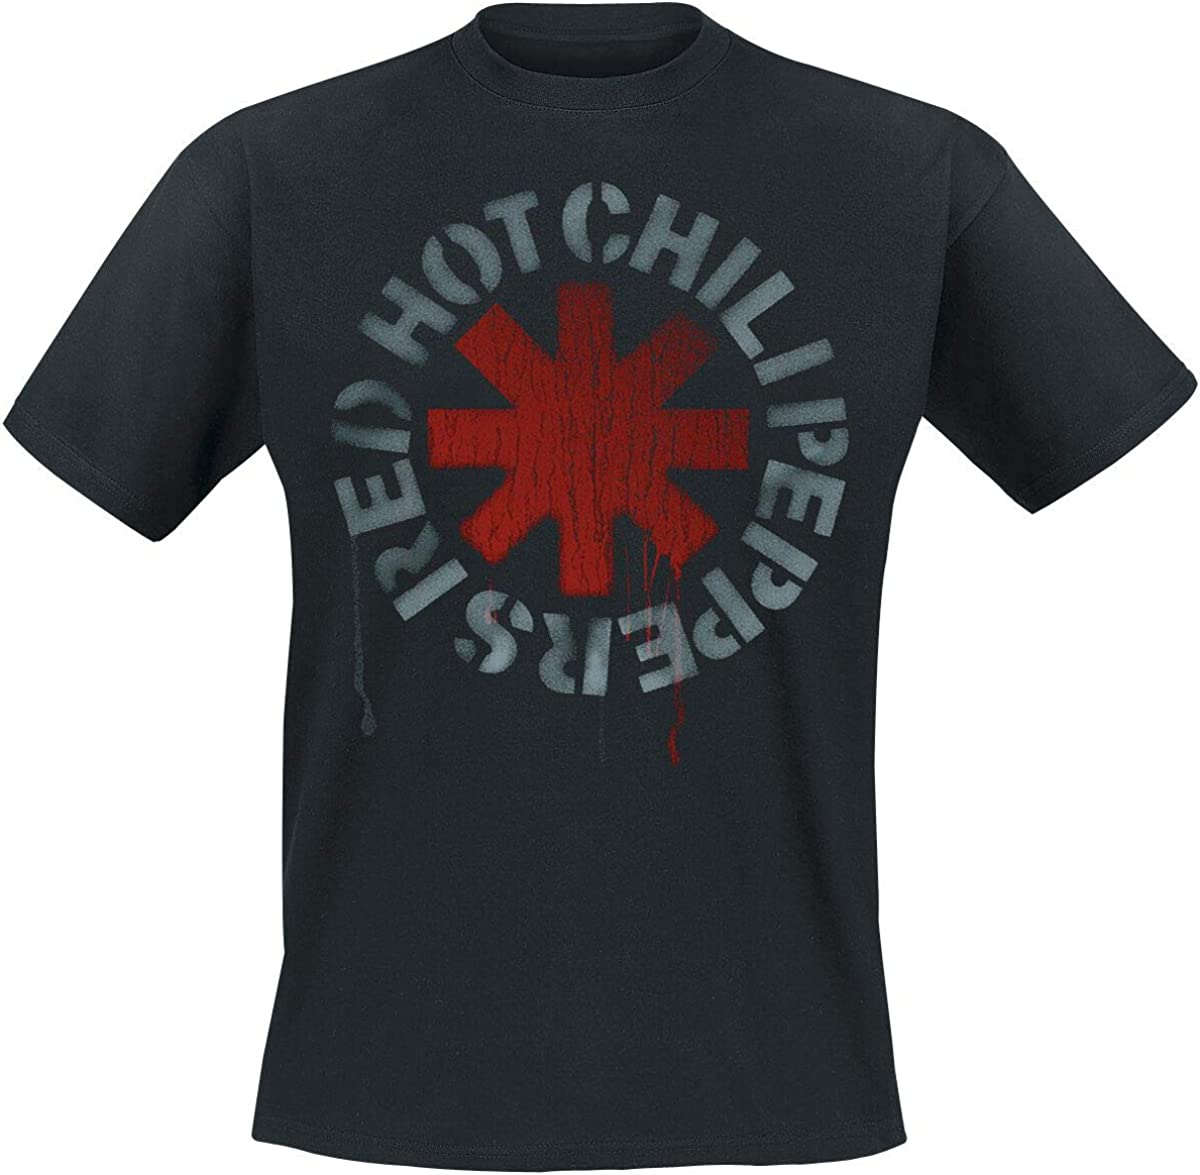 Camiseta Estampada Red Chili Peppers con Logo Negro, para Hombre